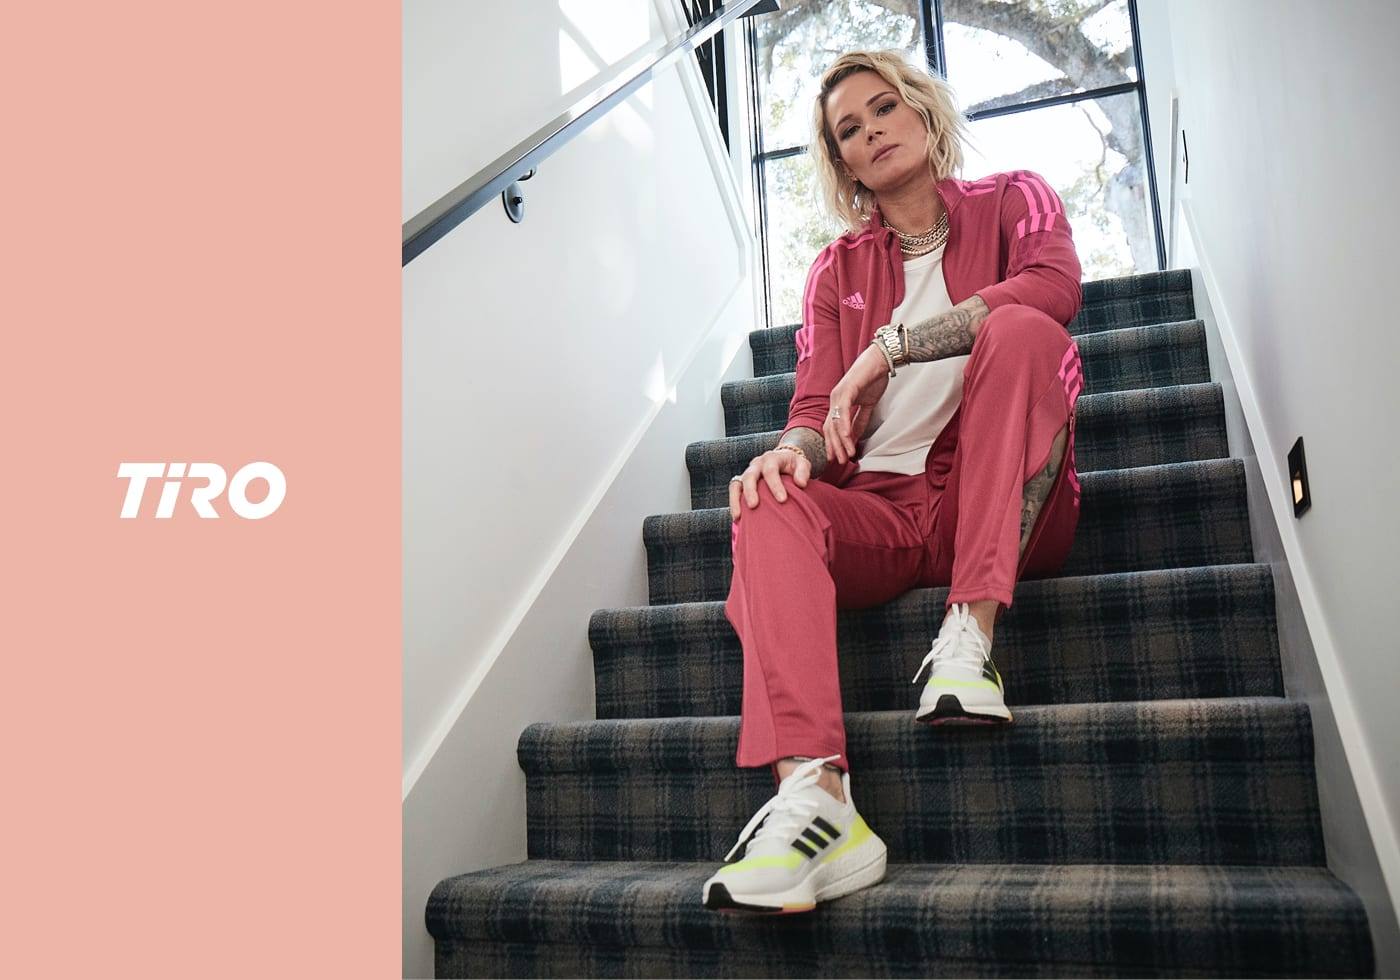 Image showing the key outfits for the Women's TIRO21 collection from adidas. Spring/Summer 2021.